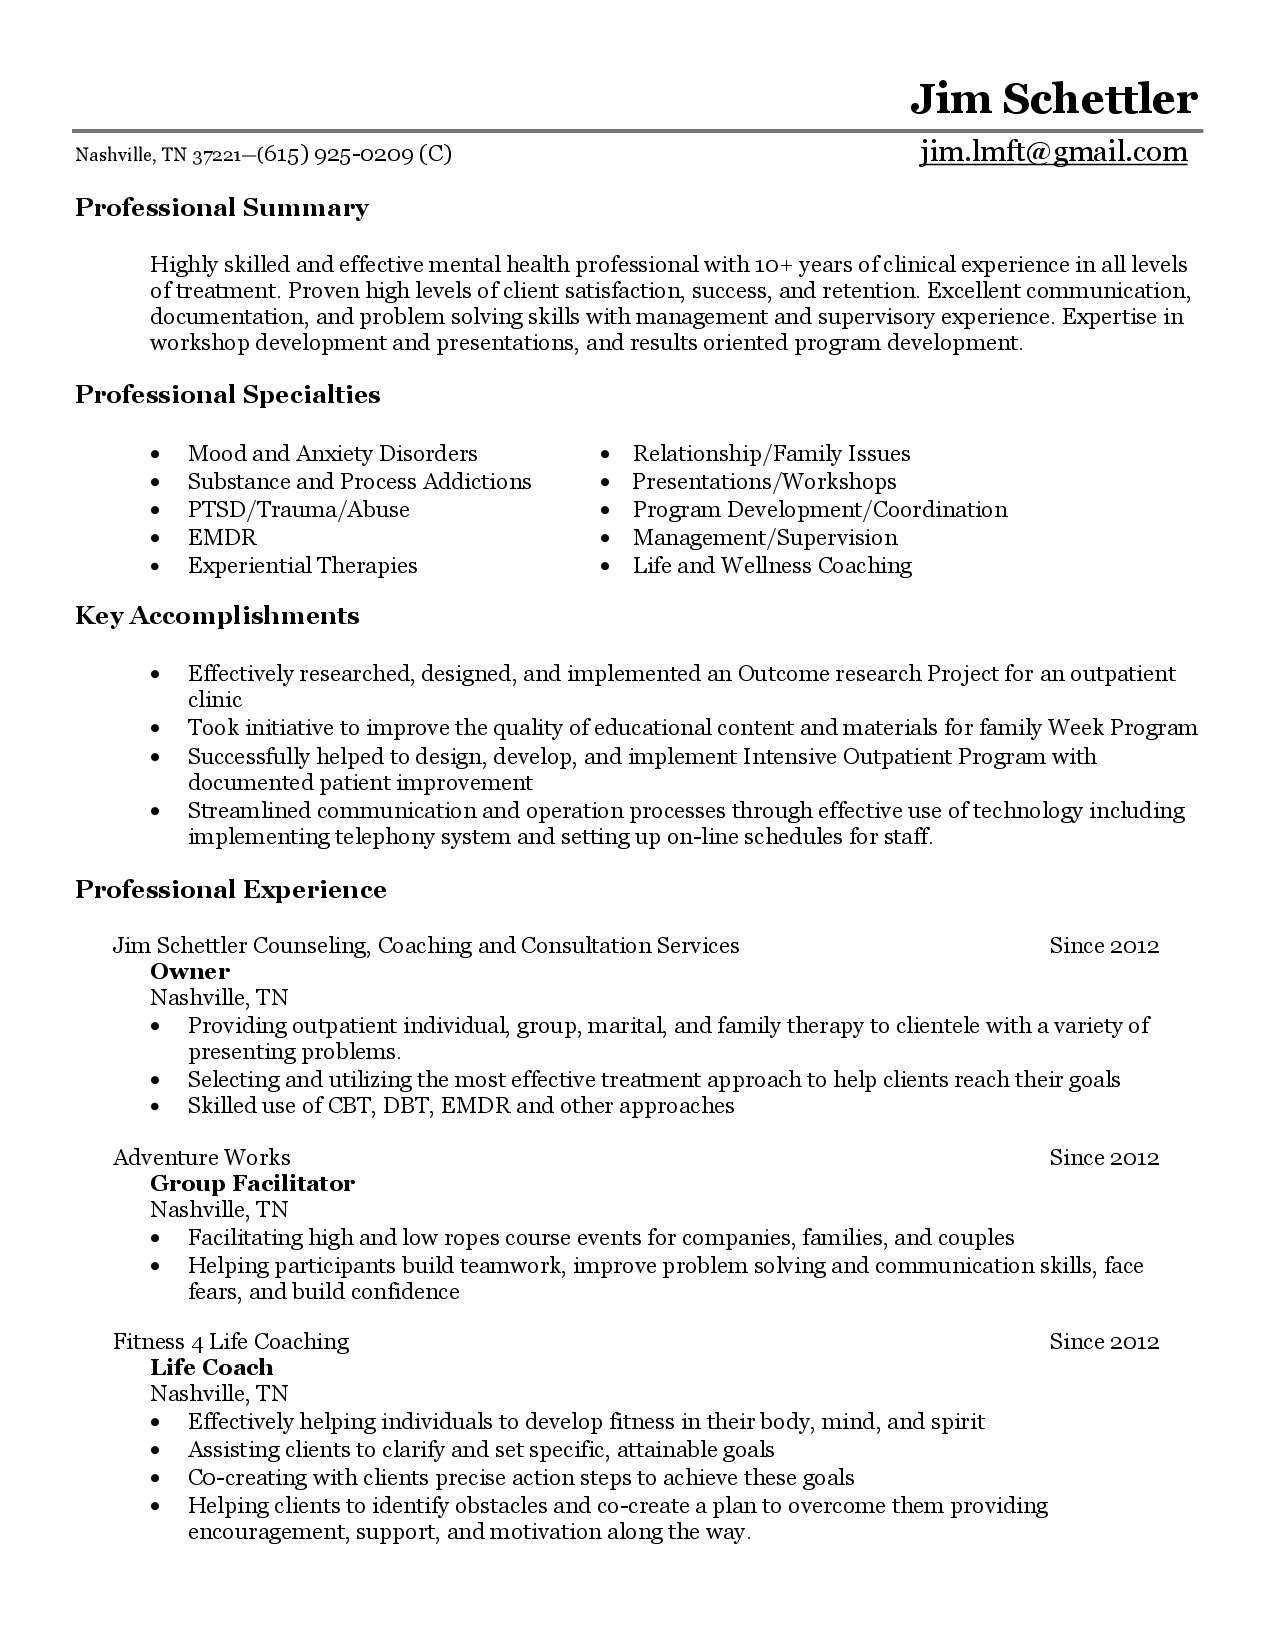 Behavioral Health Counselor Resume Sample resumes – Sample Resume for Mental Health Counselor